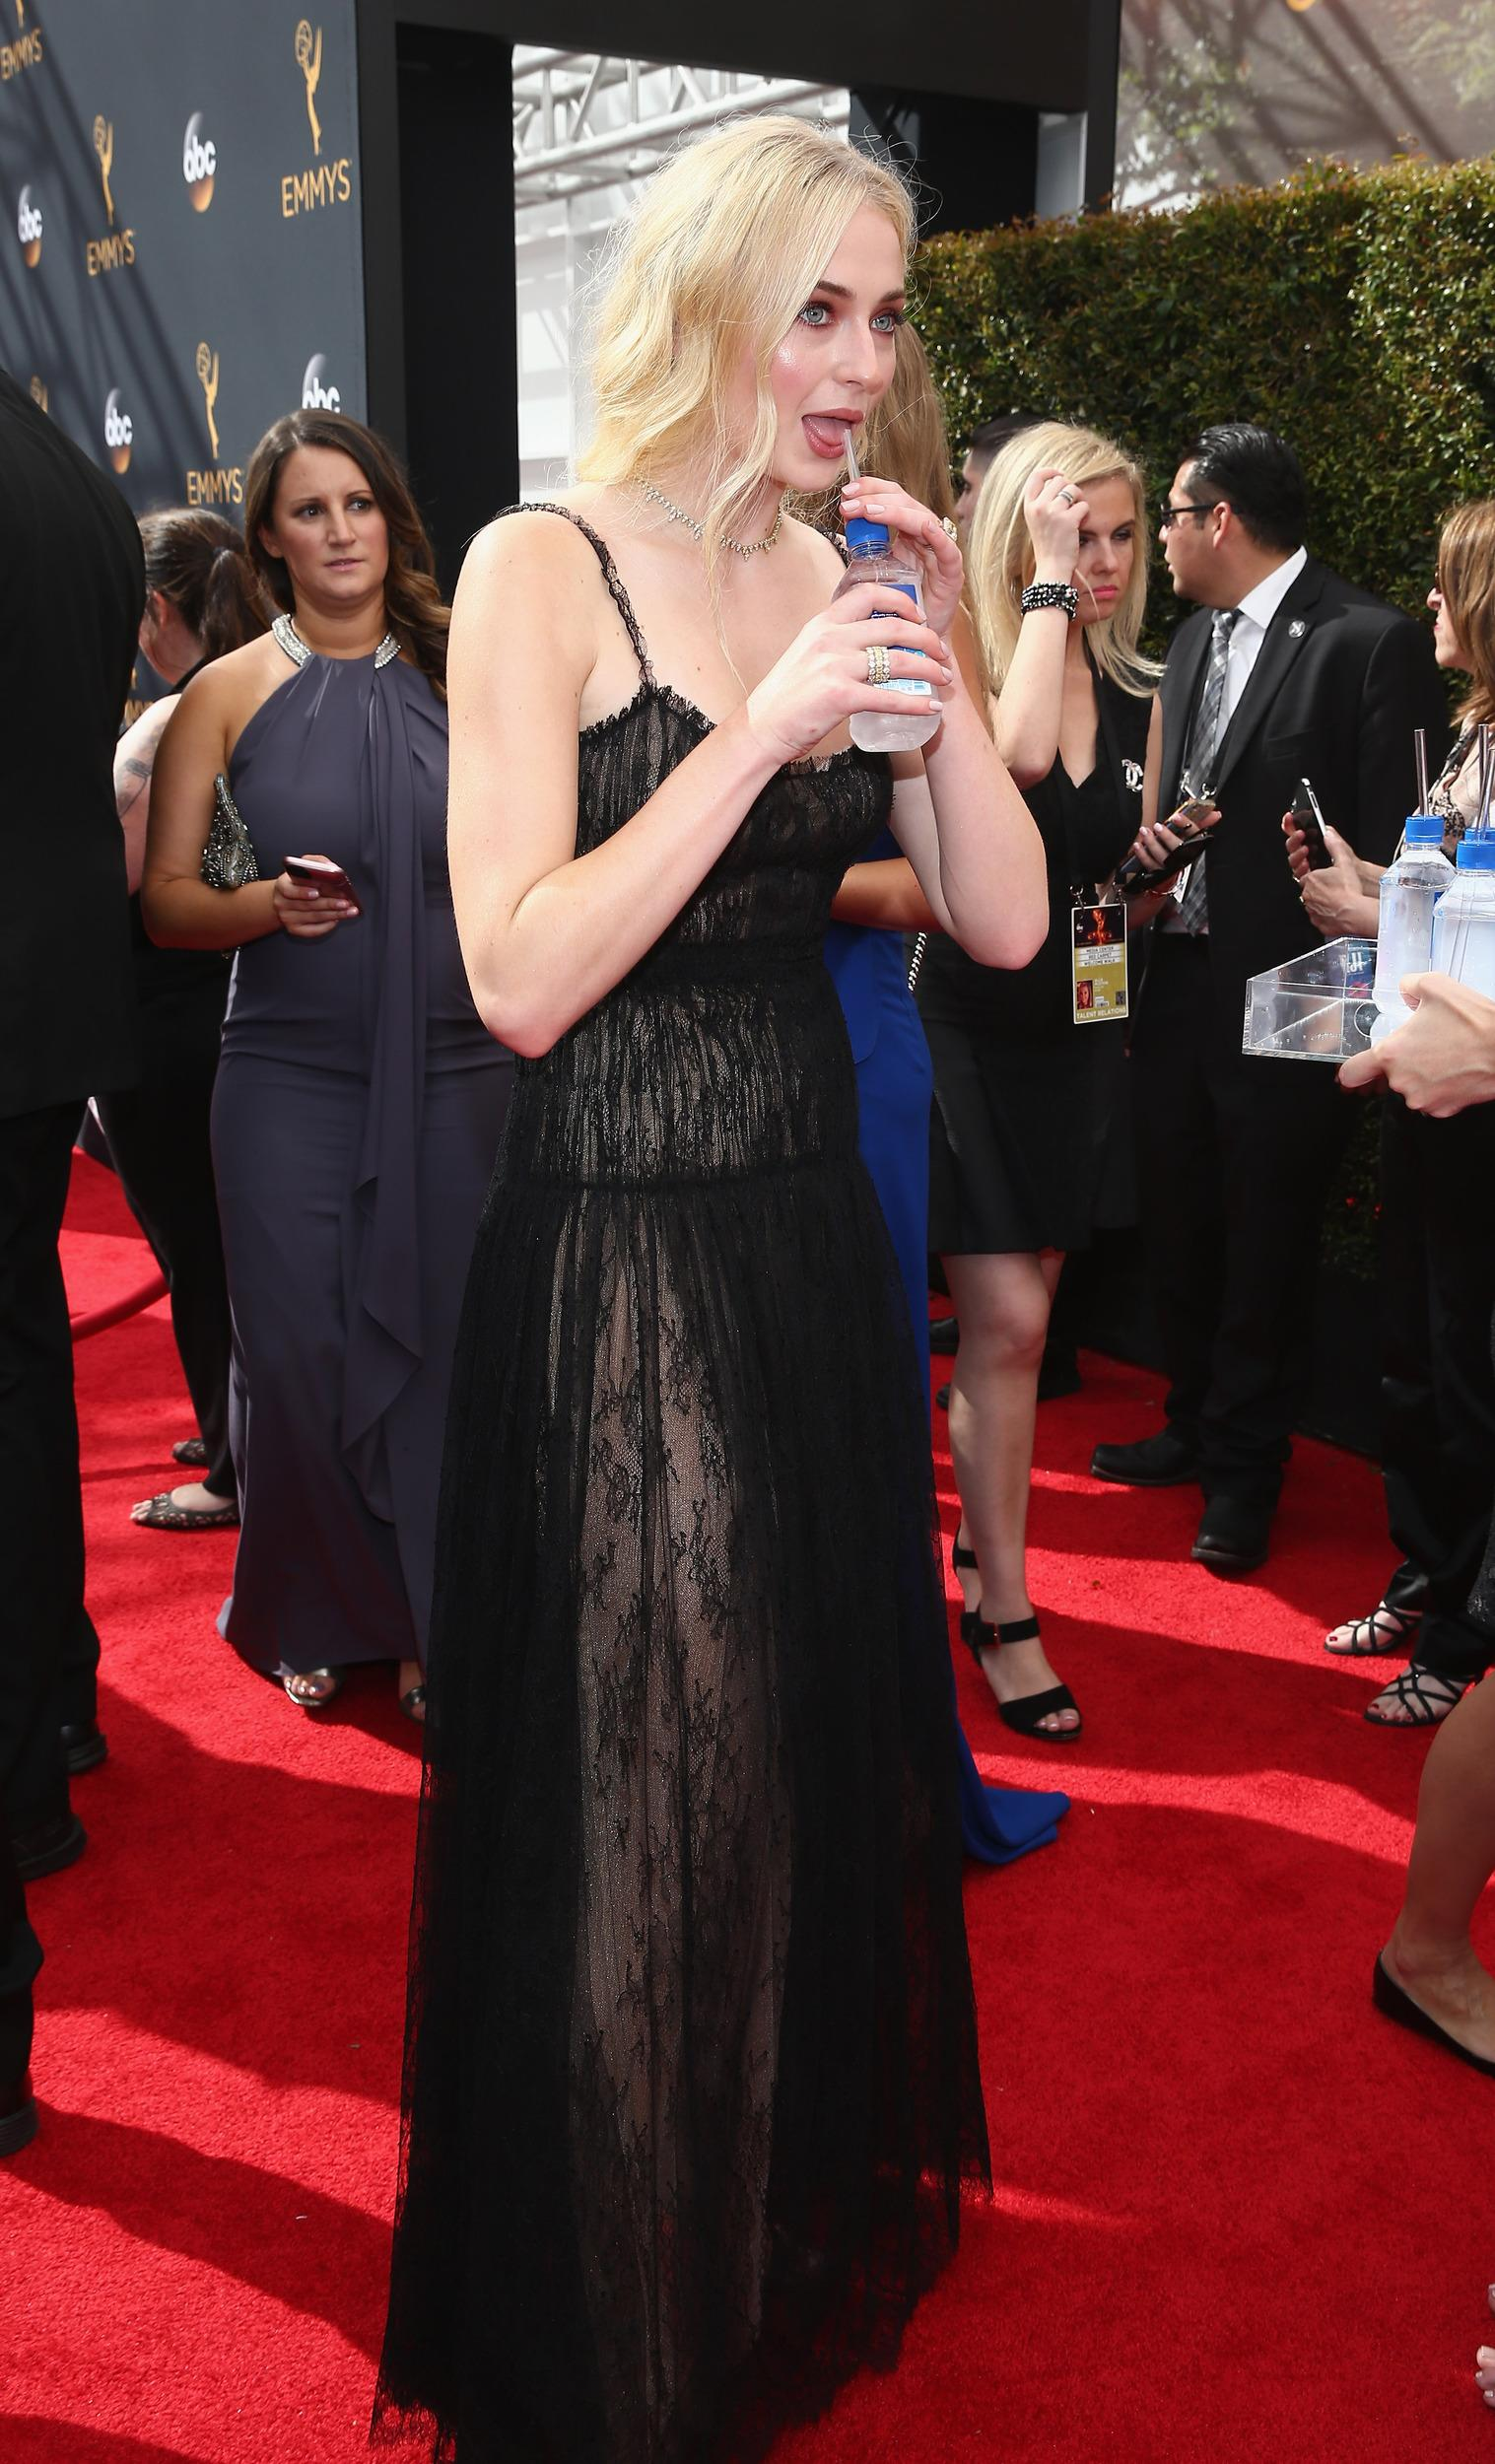 Sophie Turner arrives at the 68th Primetime Emmy Awards on Sunday, Sept. 18, 2016, at the Microsoft Theater in Los Angeles. (Photo by John Salangsang/Invision/AP)